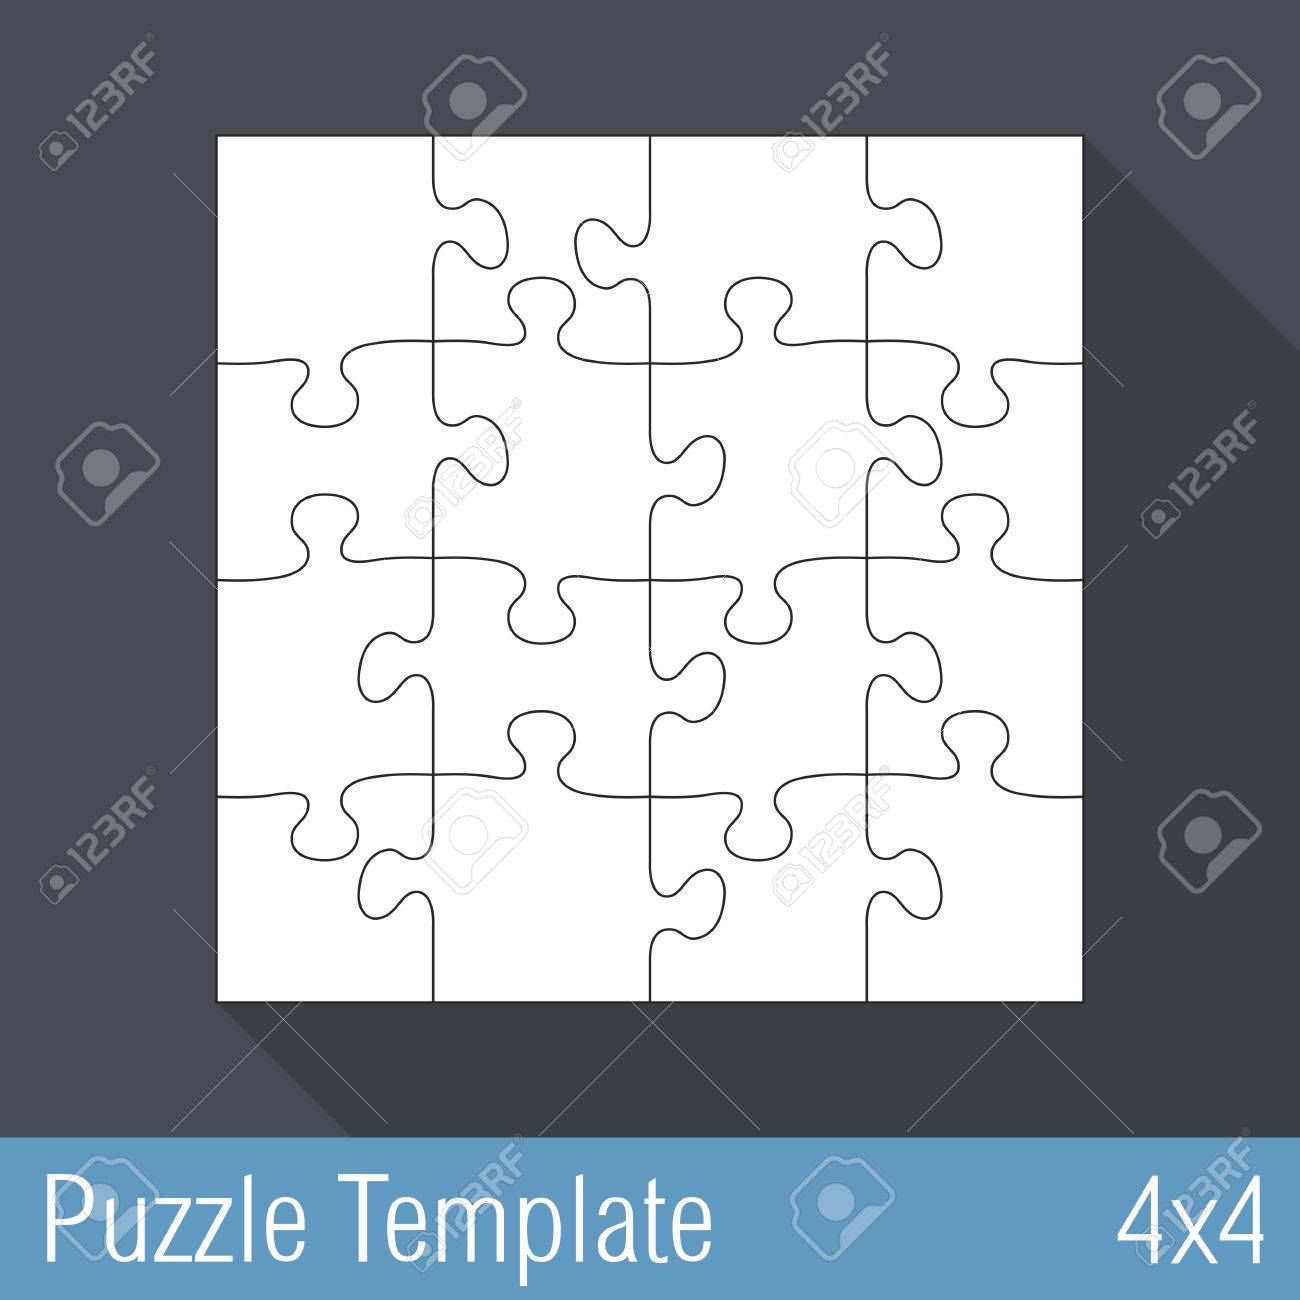 Jigsaw Puzzle Template 16 Pieces 4X4 Stock Vector 28031083